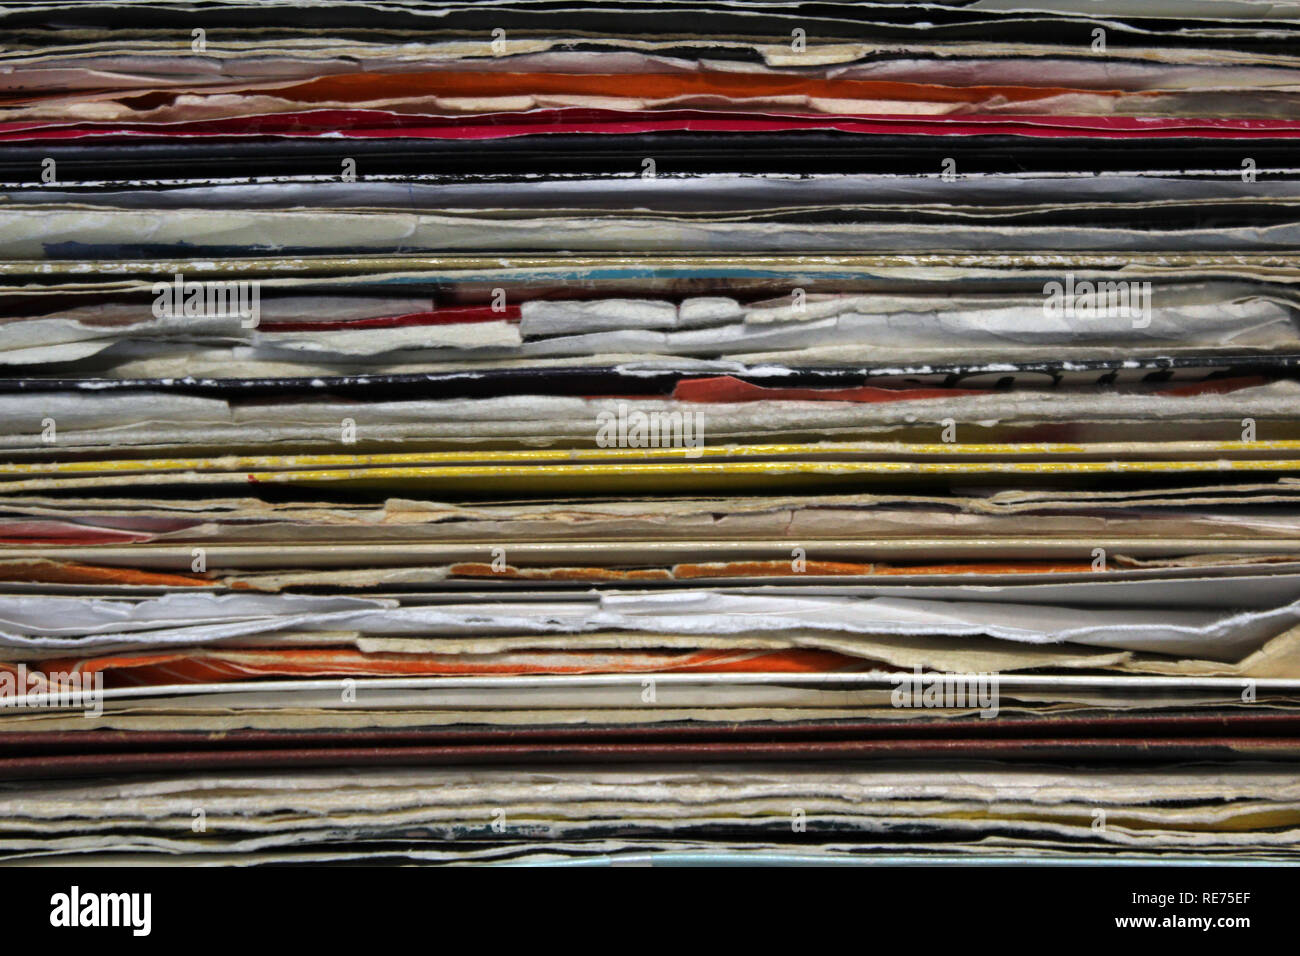 Old vintage vinyl record sleeves, close-up - Stock Image